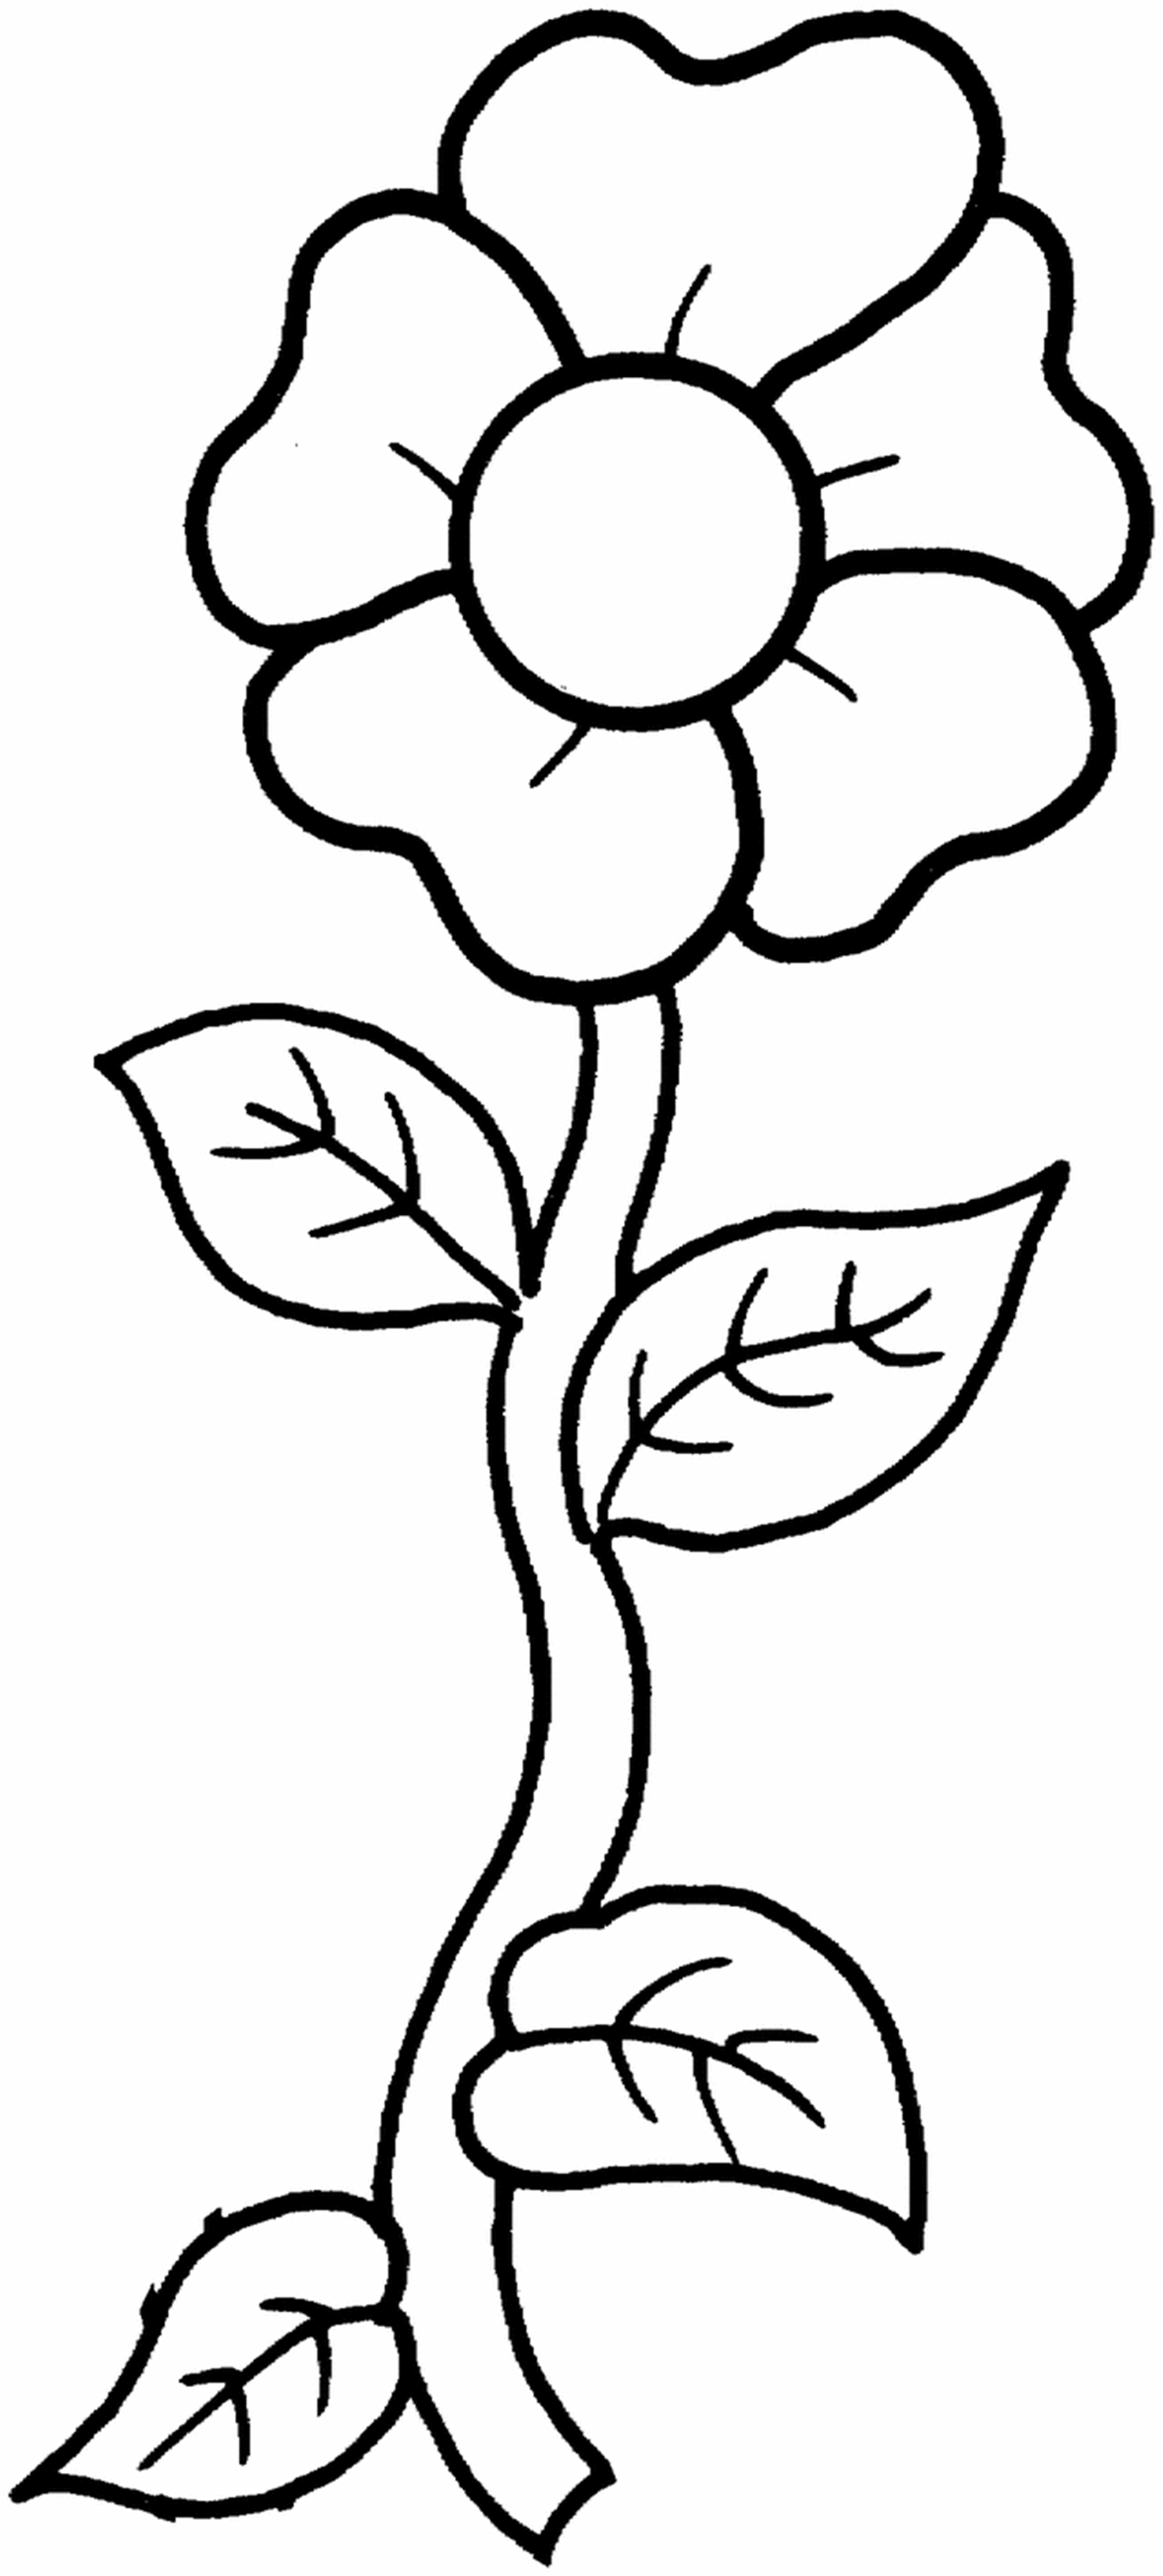 coloring picture flower 10 flower coloring sheets for girls and boys all esl coloring picture flower